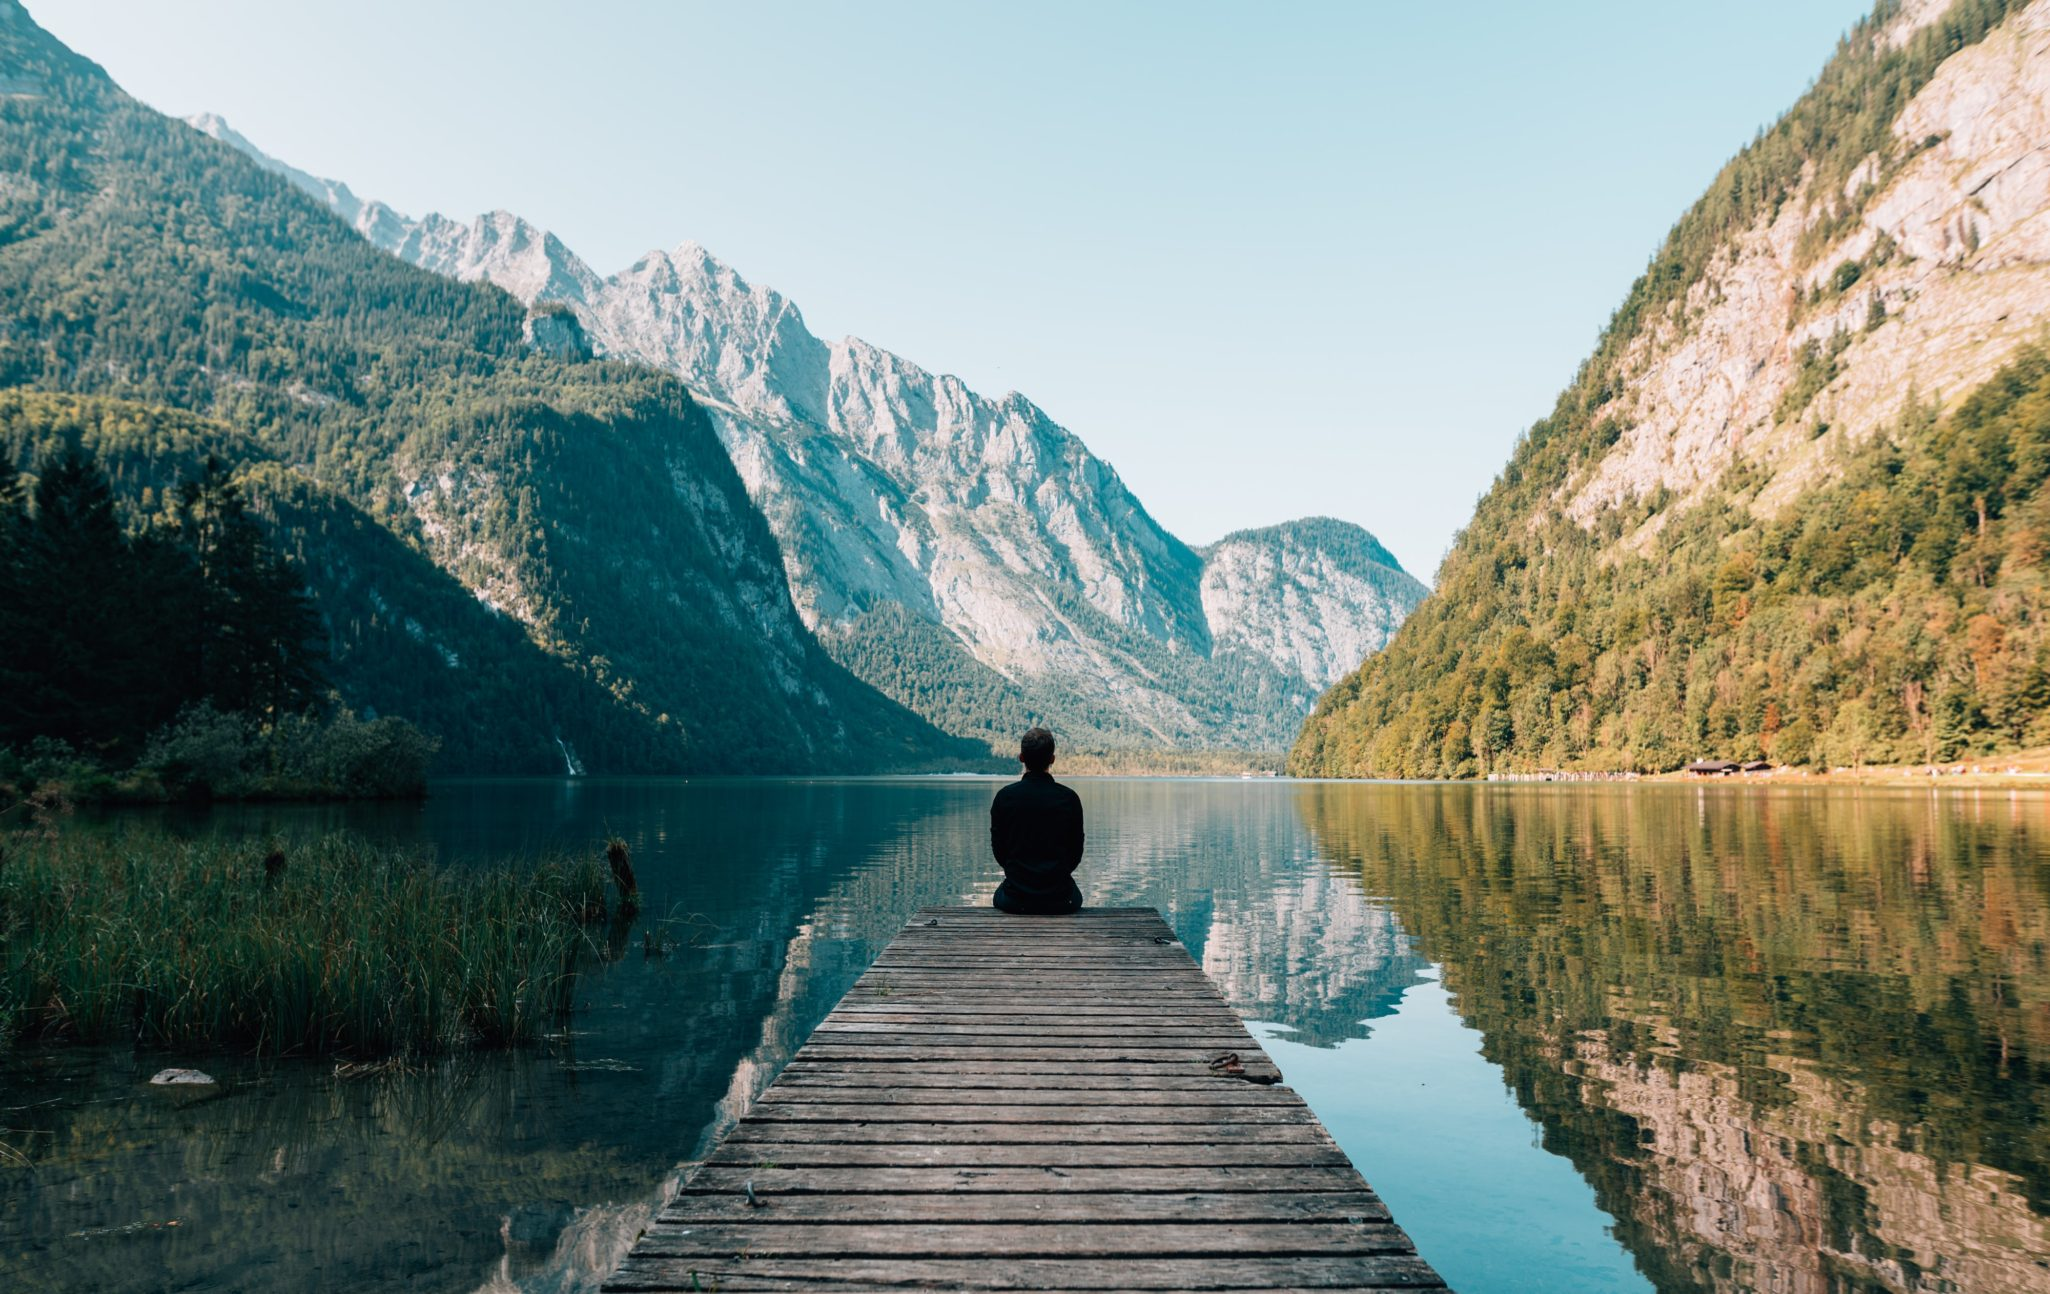 Meditation exercises to reduce stress